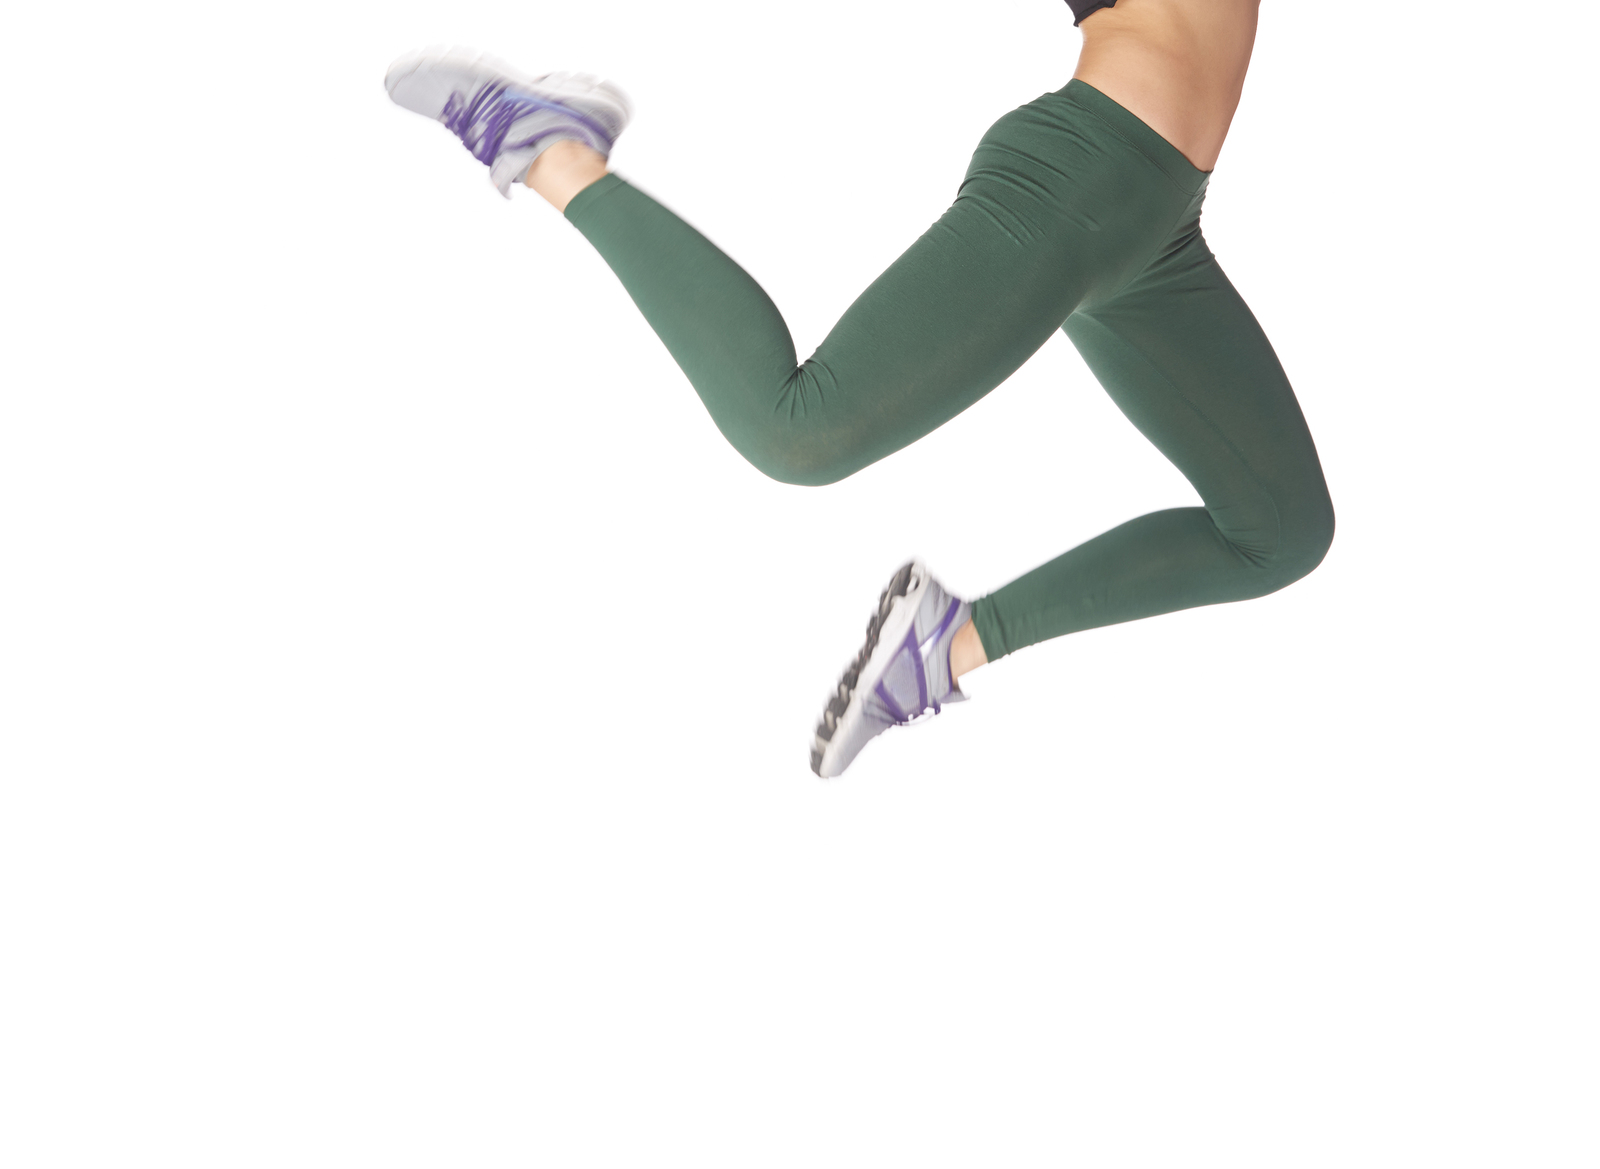 Read more about the article 7 Common Legging Problems and How to Fix Them